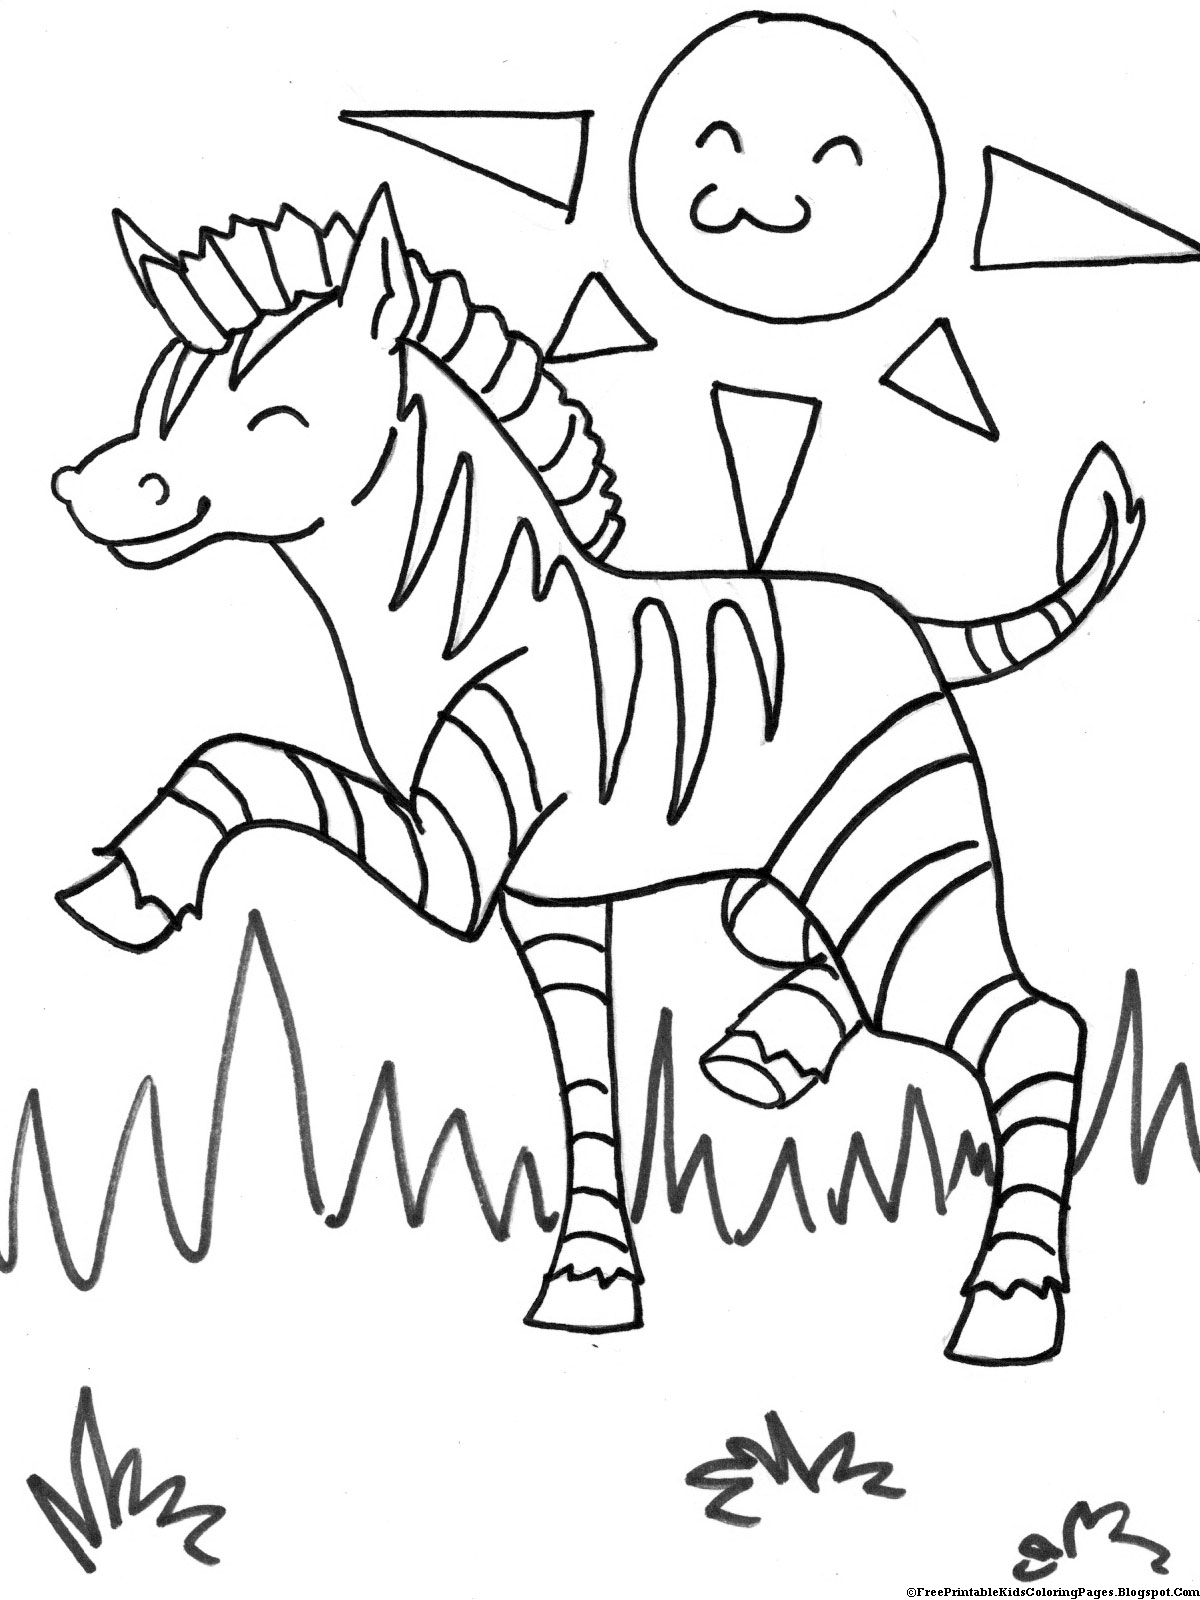 coloring images to print large print coloring pages for adults at getcoloringscom print to images coloring